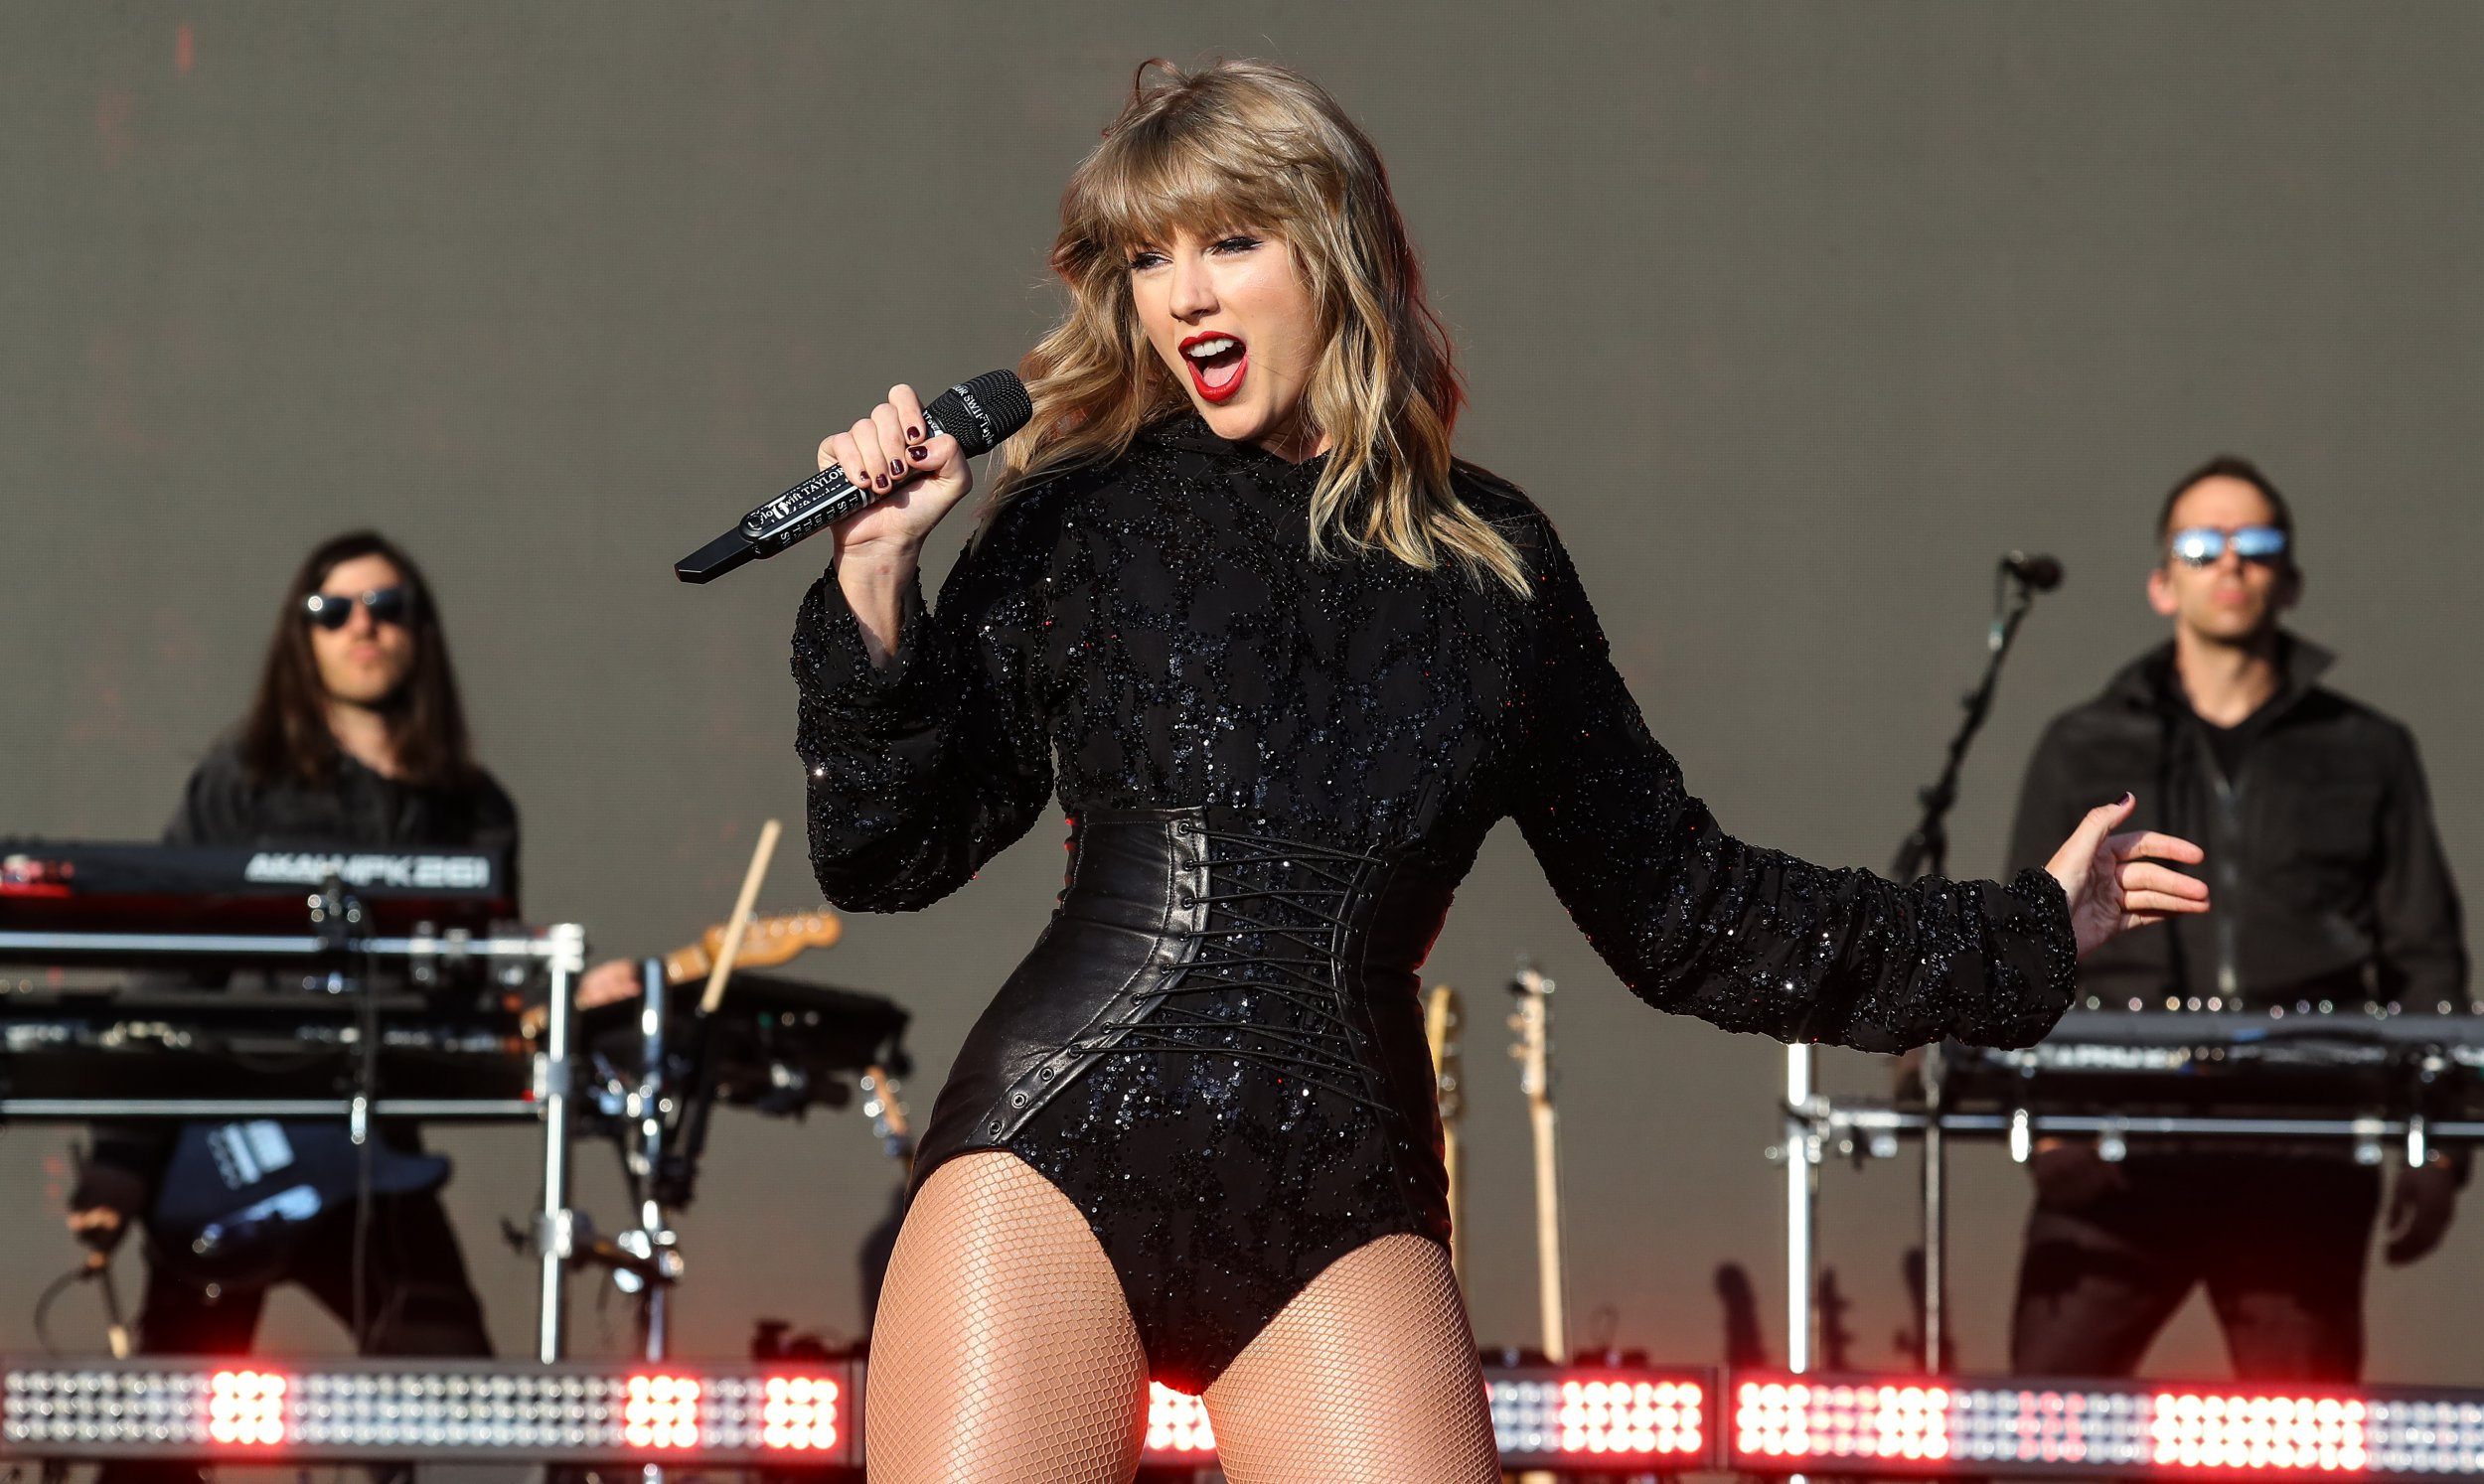 Taylor Swift fans left raging after losing their front row seats days before gig